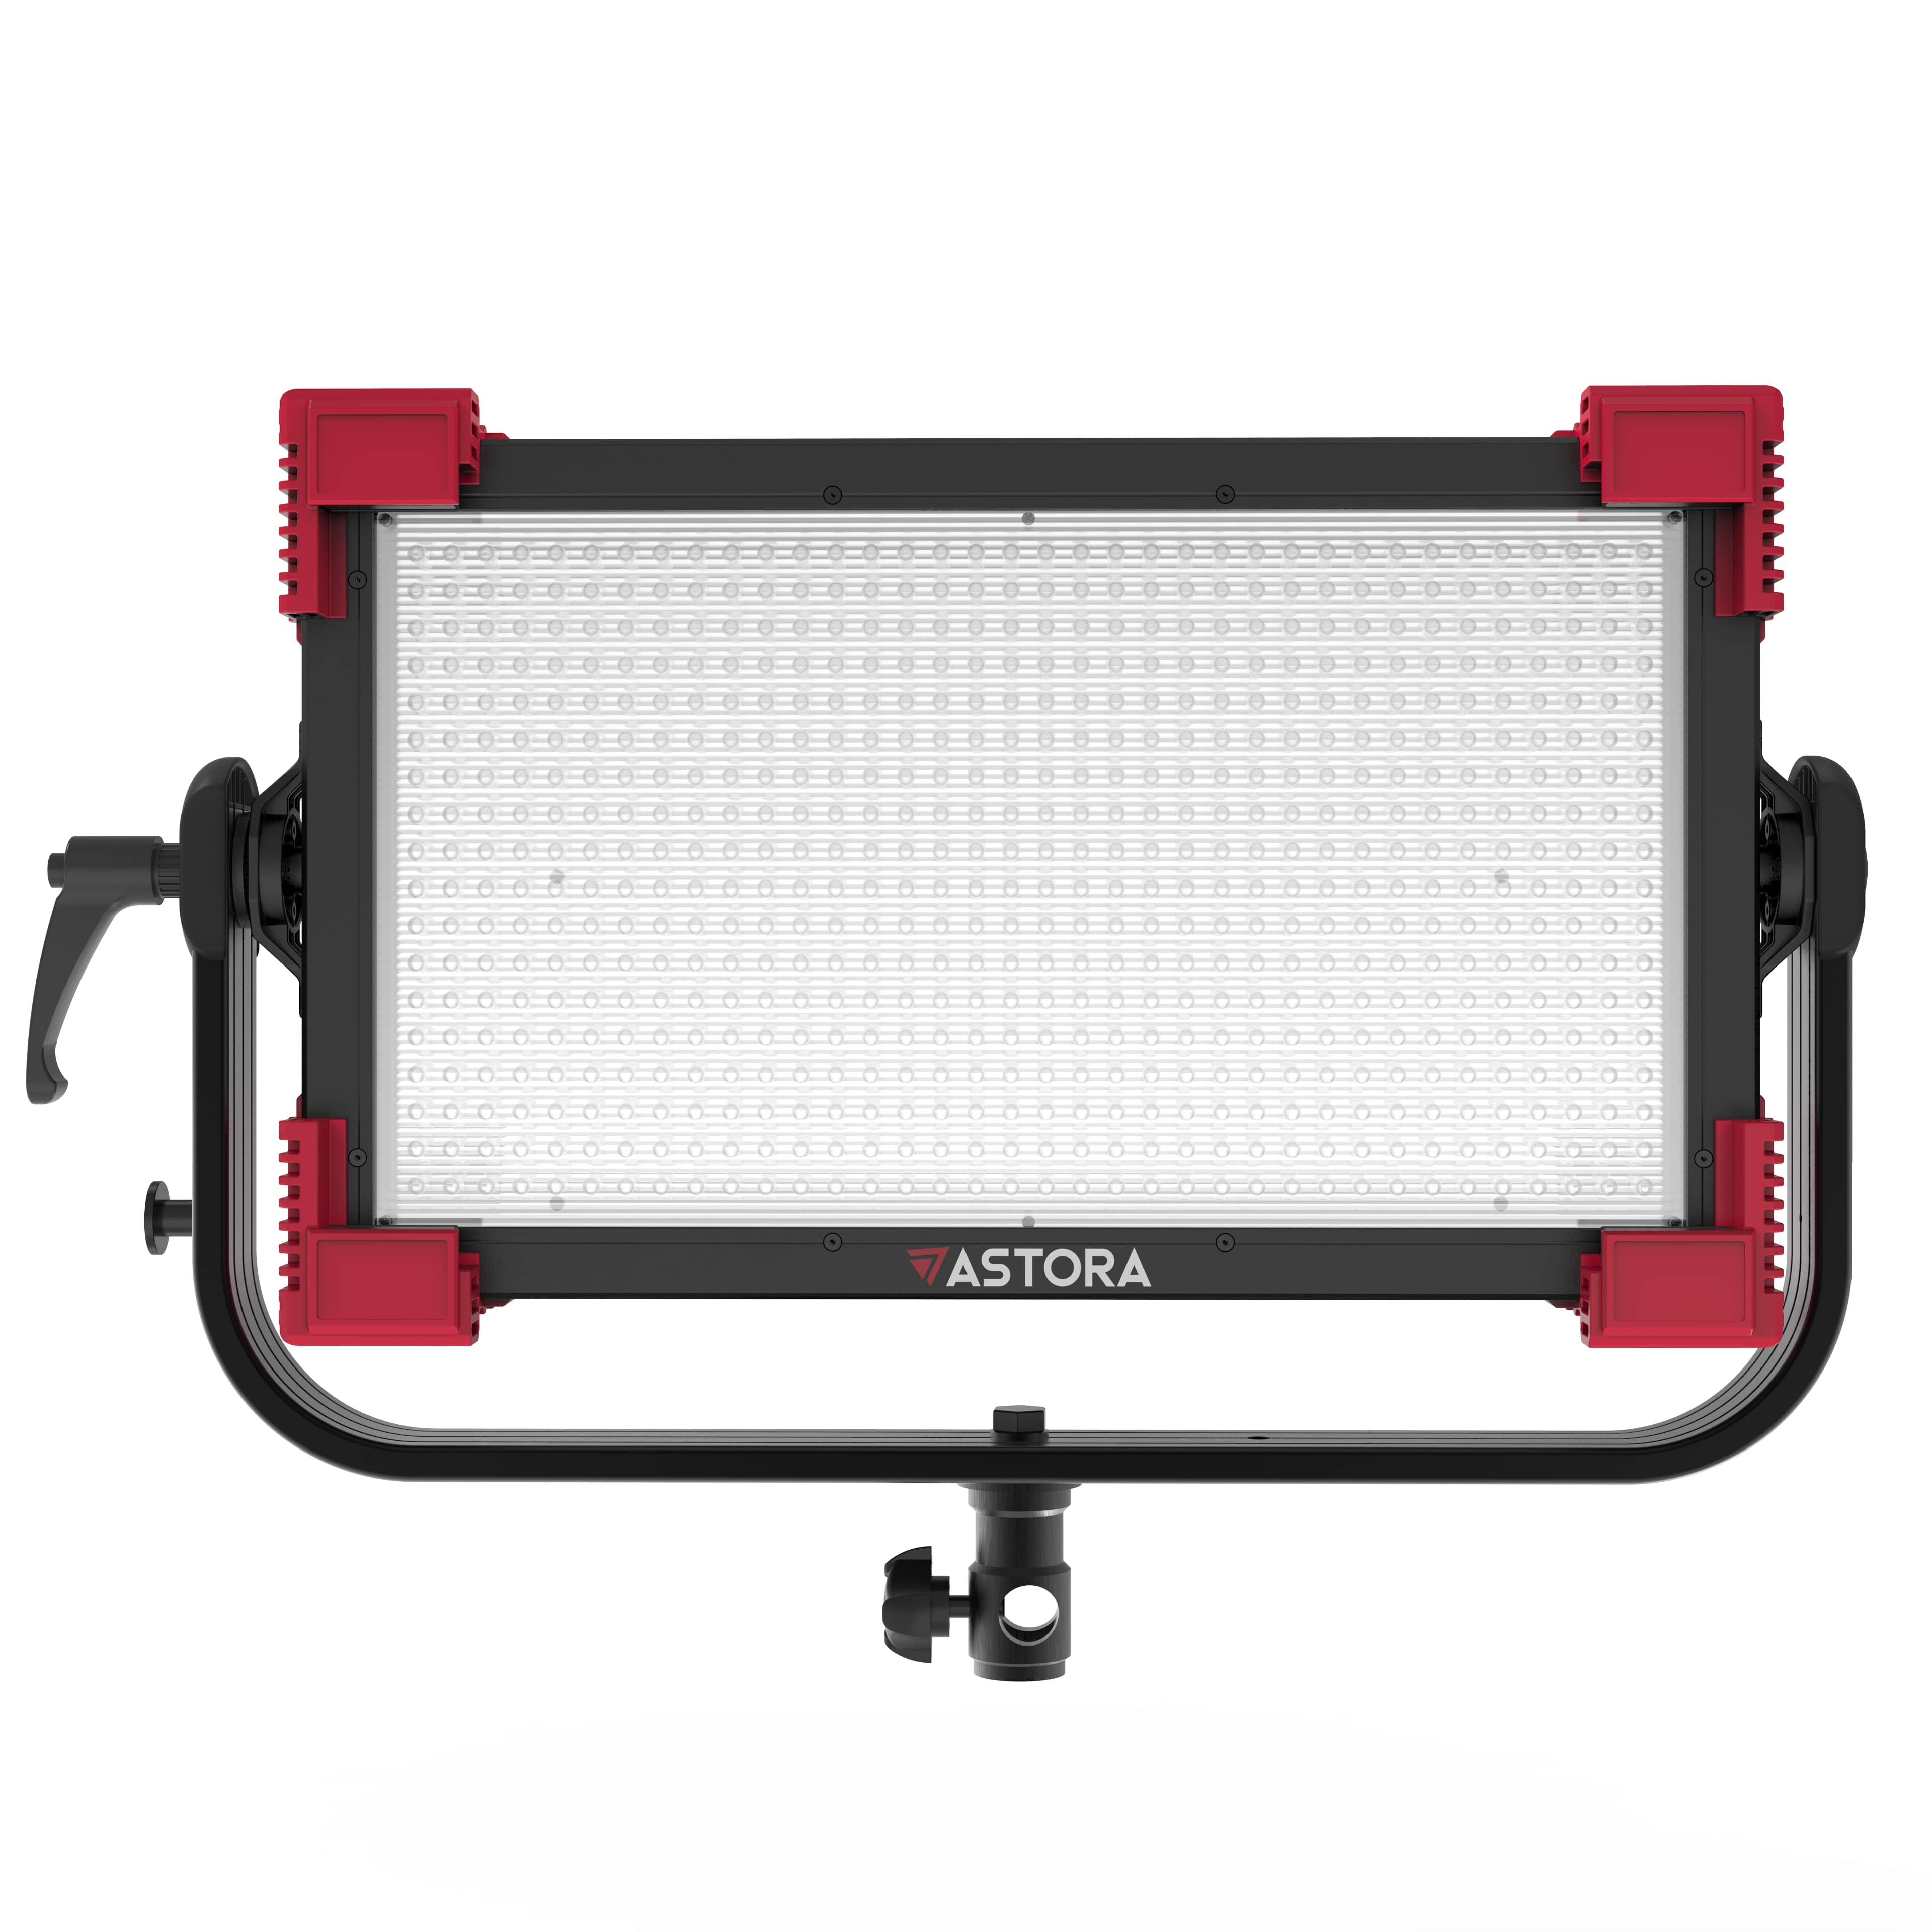 Astora WS 840D Daylight Widescreen LED Panel Light